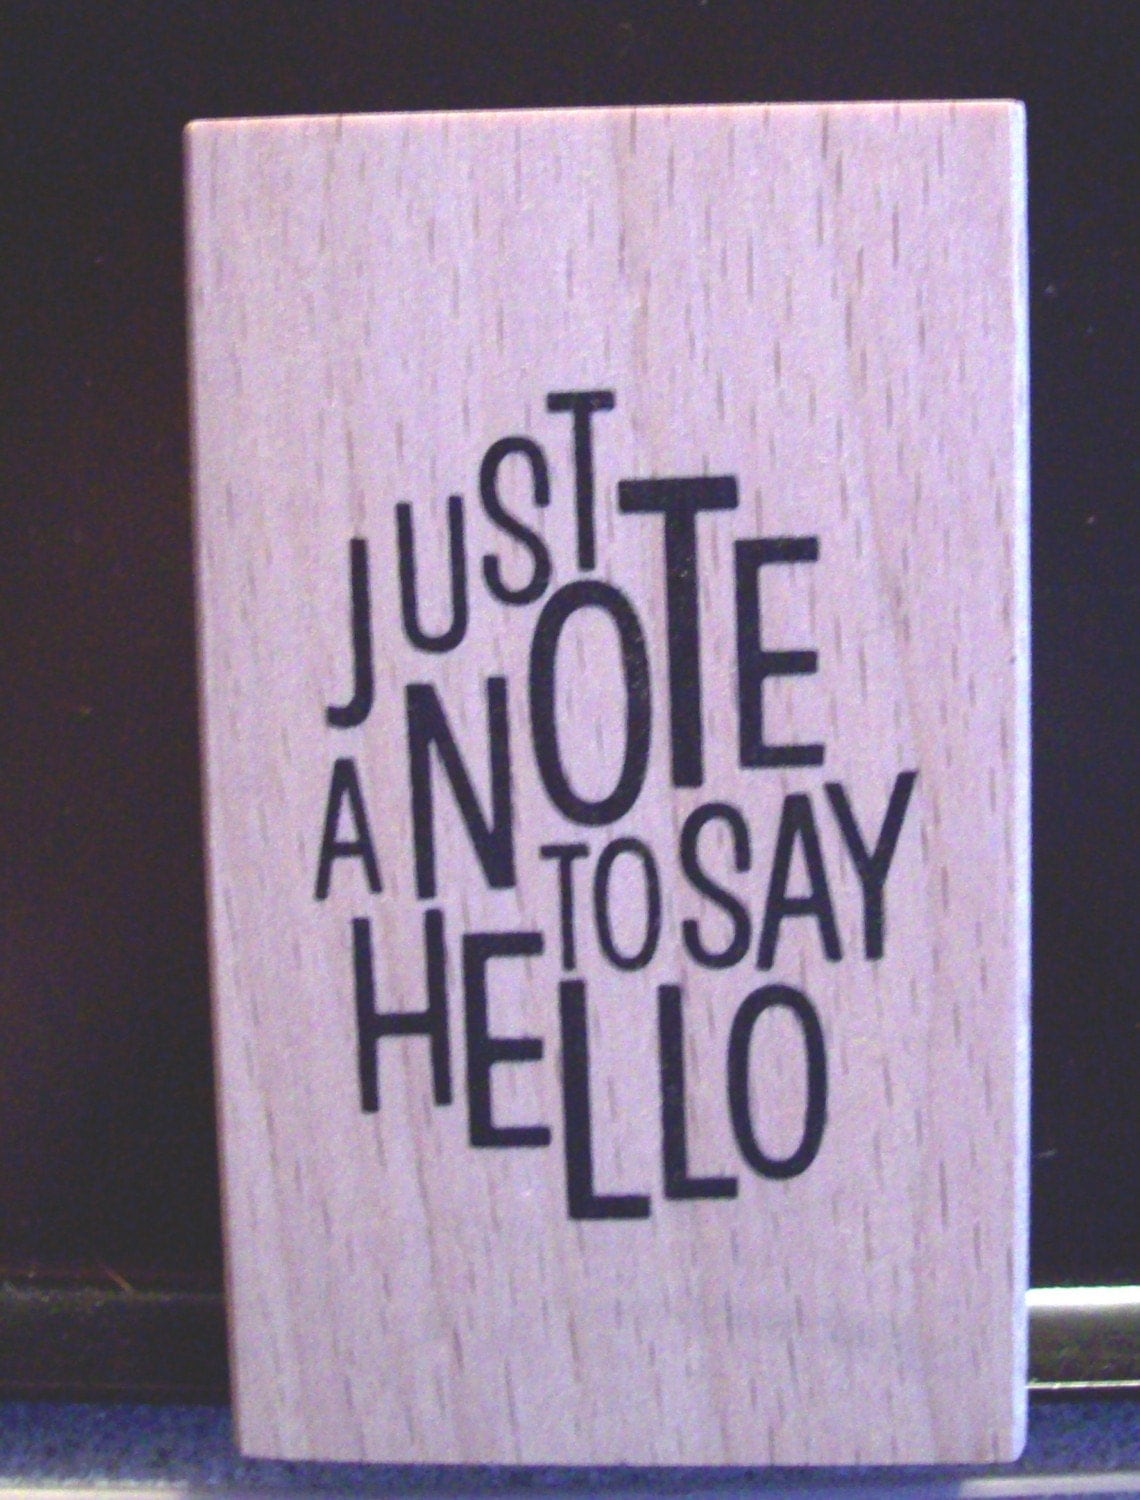 Just Saying Hello Quotes. QuotesGram